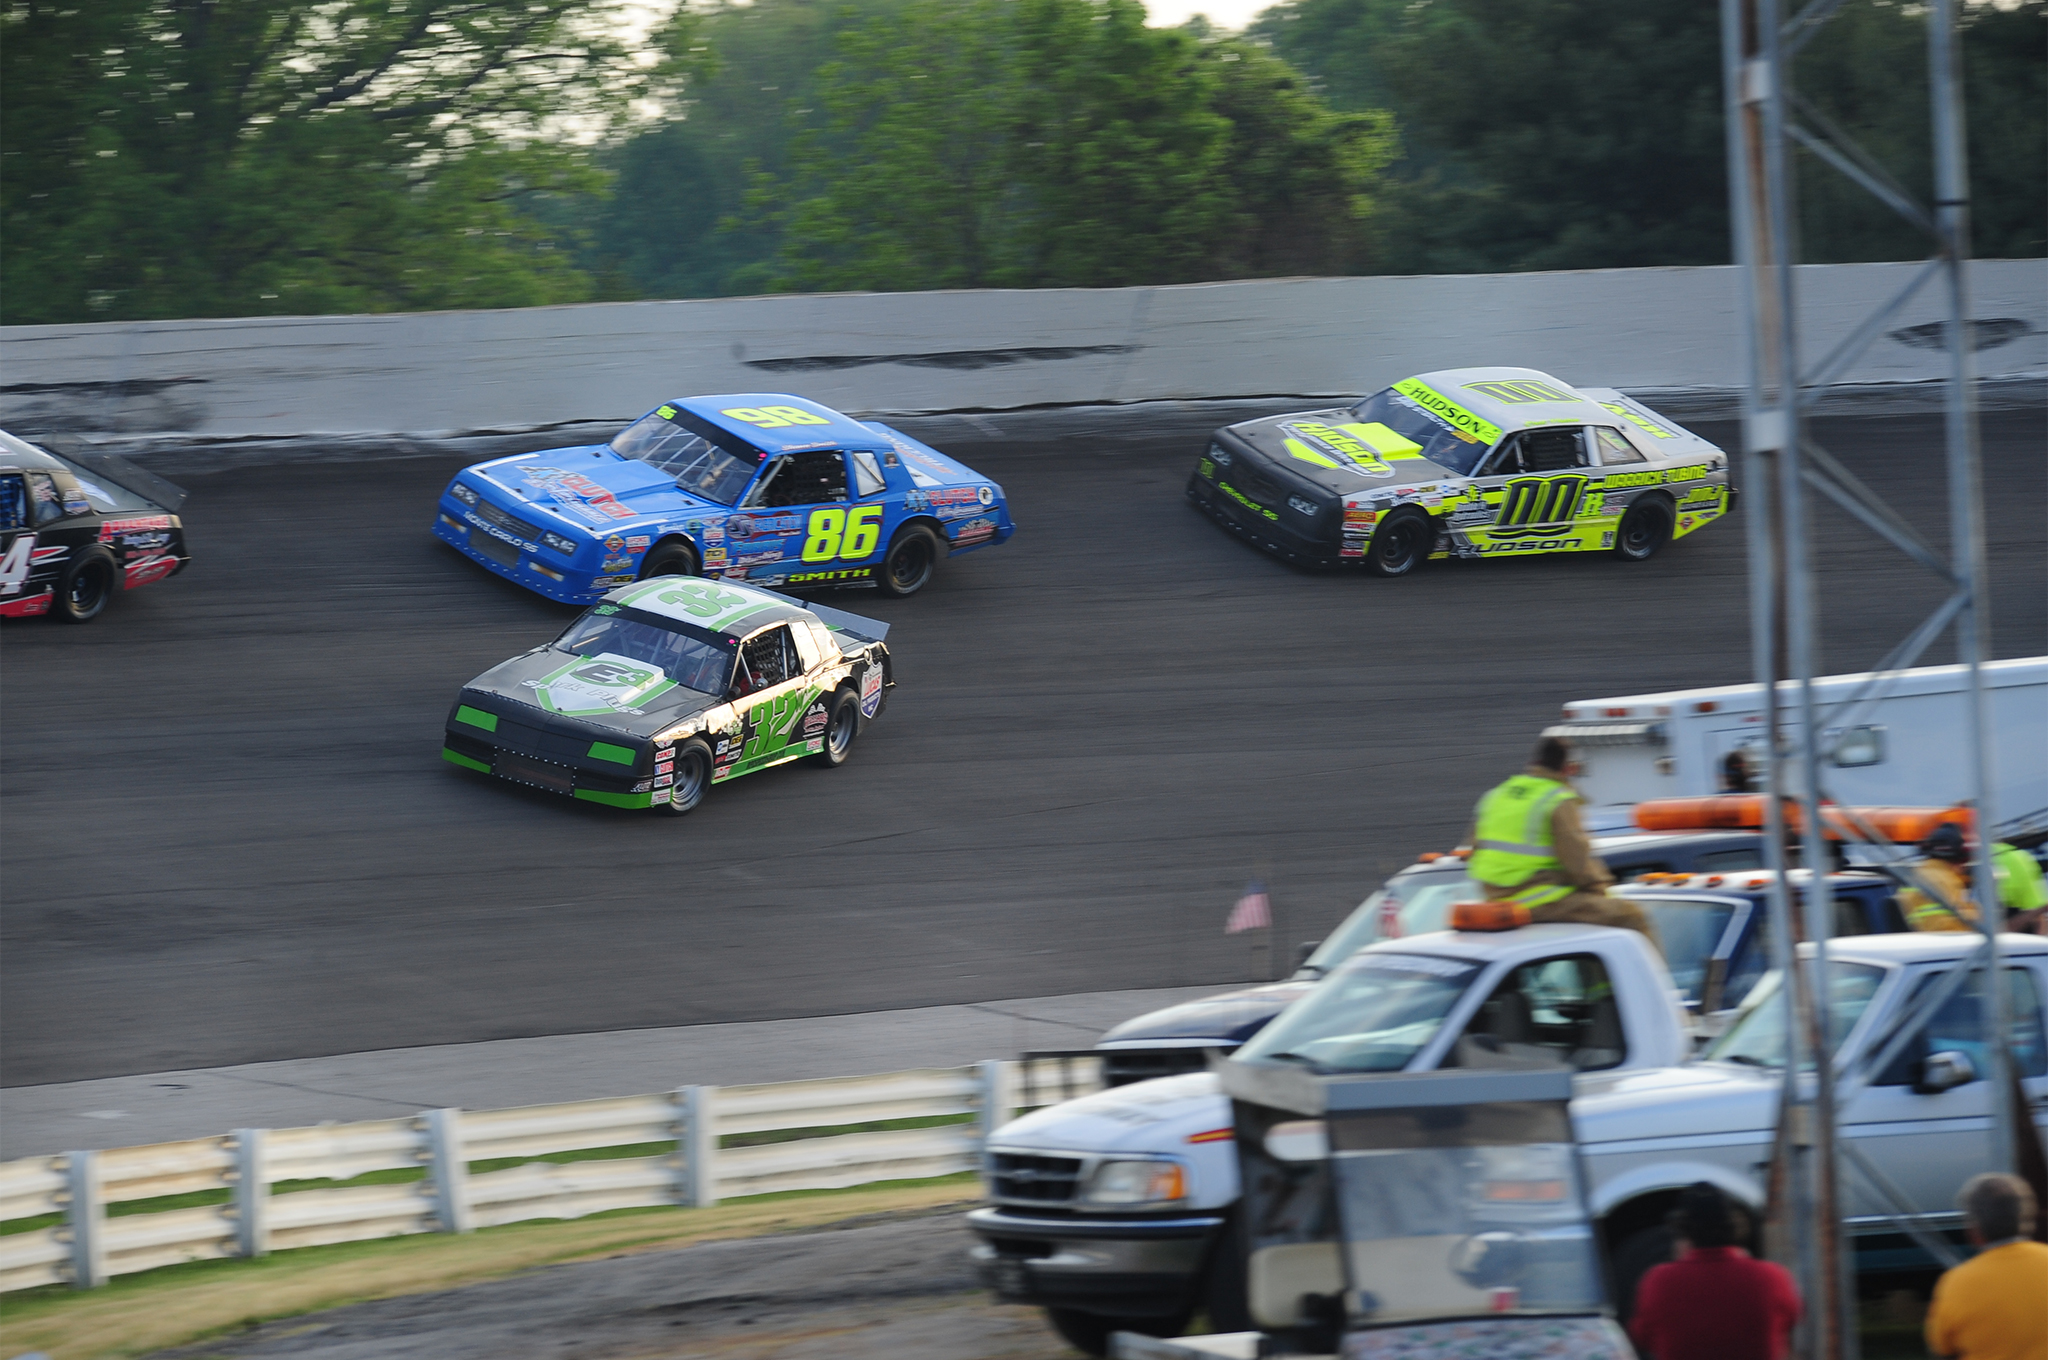 """I got greedy,"" says Roger Williams (#32), who tried to dive under Will Kimmel (#44) for the lead in heat race number 2. Williams saved it and continued on but both Shawn Smith (#86) and Brett Hudson (#00) got by."